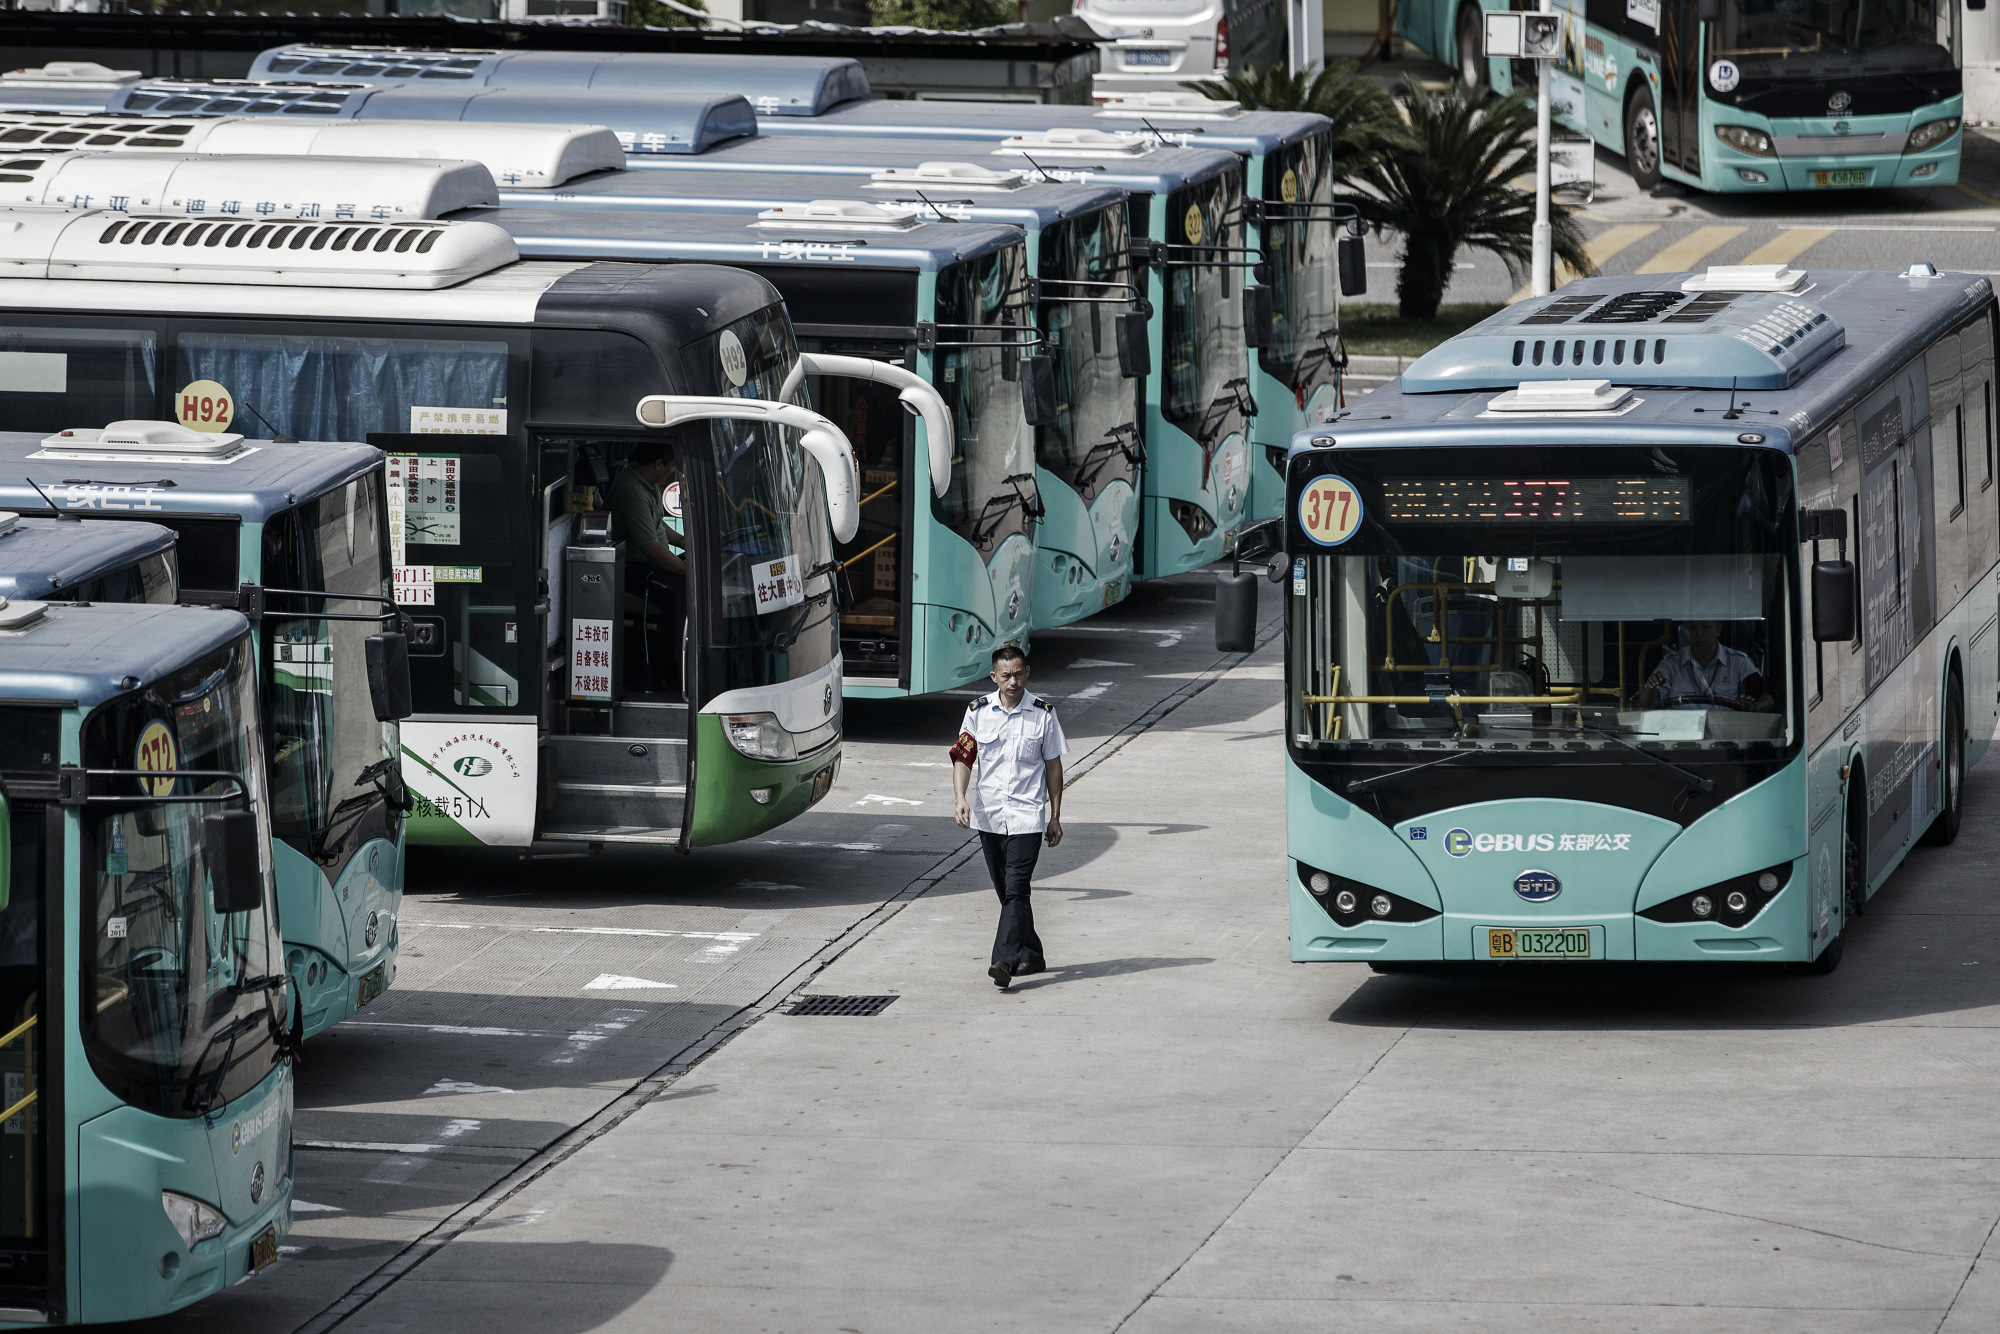 bloomberg.com - Alaric Nightingale - Forget Tesla, It's China's E-Buses That Are Denting Oil Demand